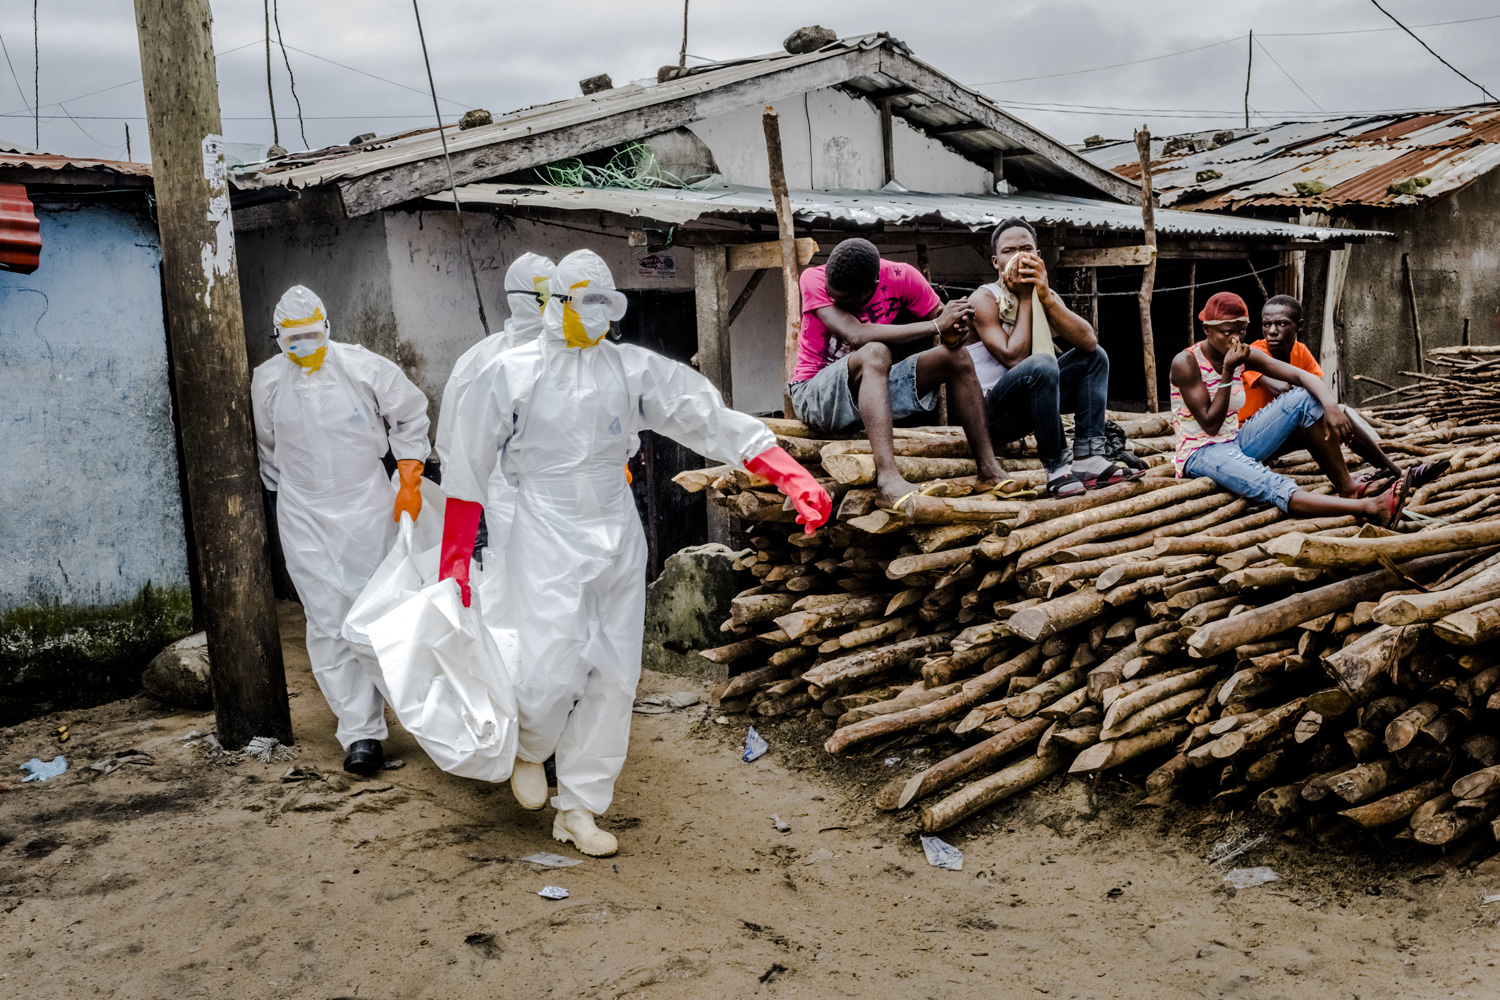 August 28, 2014. A burial team in protective clothing removes the body an Ebola victim from an isolation ward in the West Point neighborhood of Monrovia, the capital of Liberia.